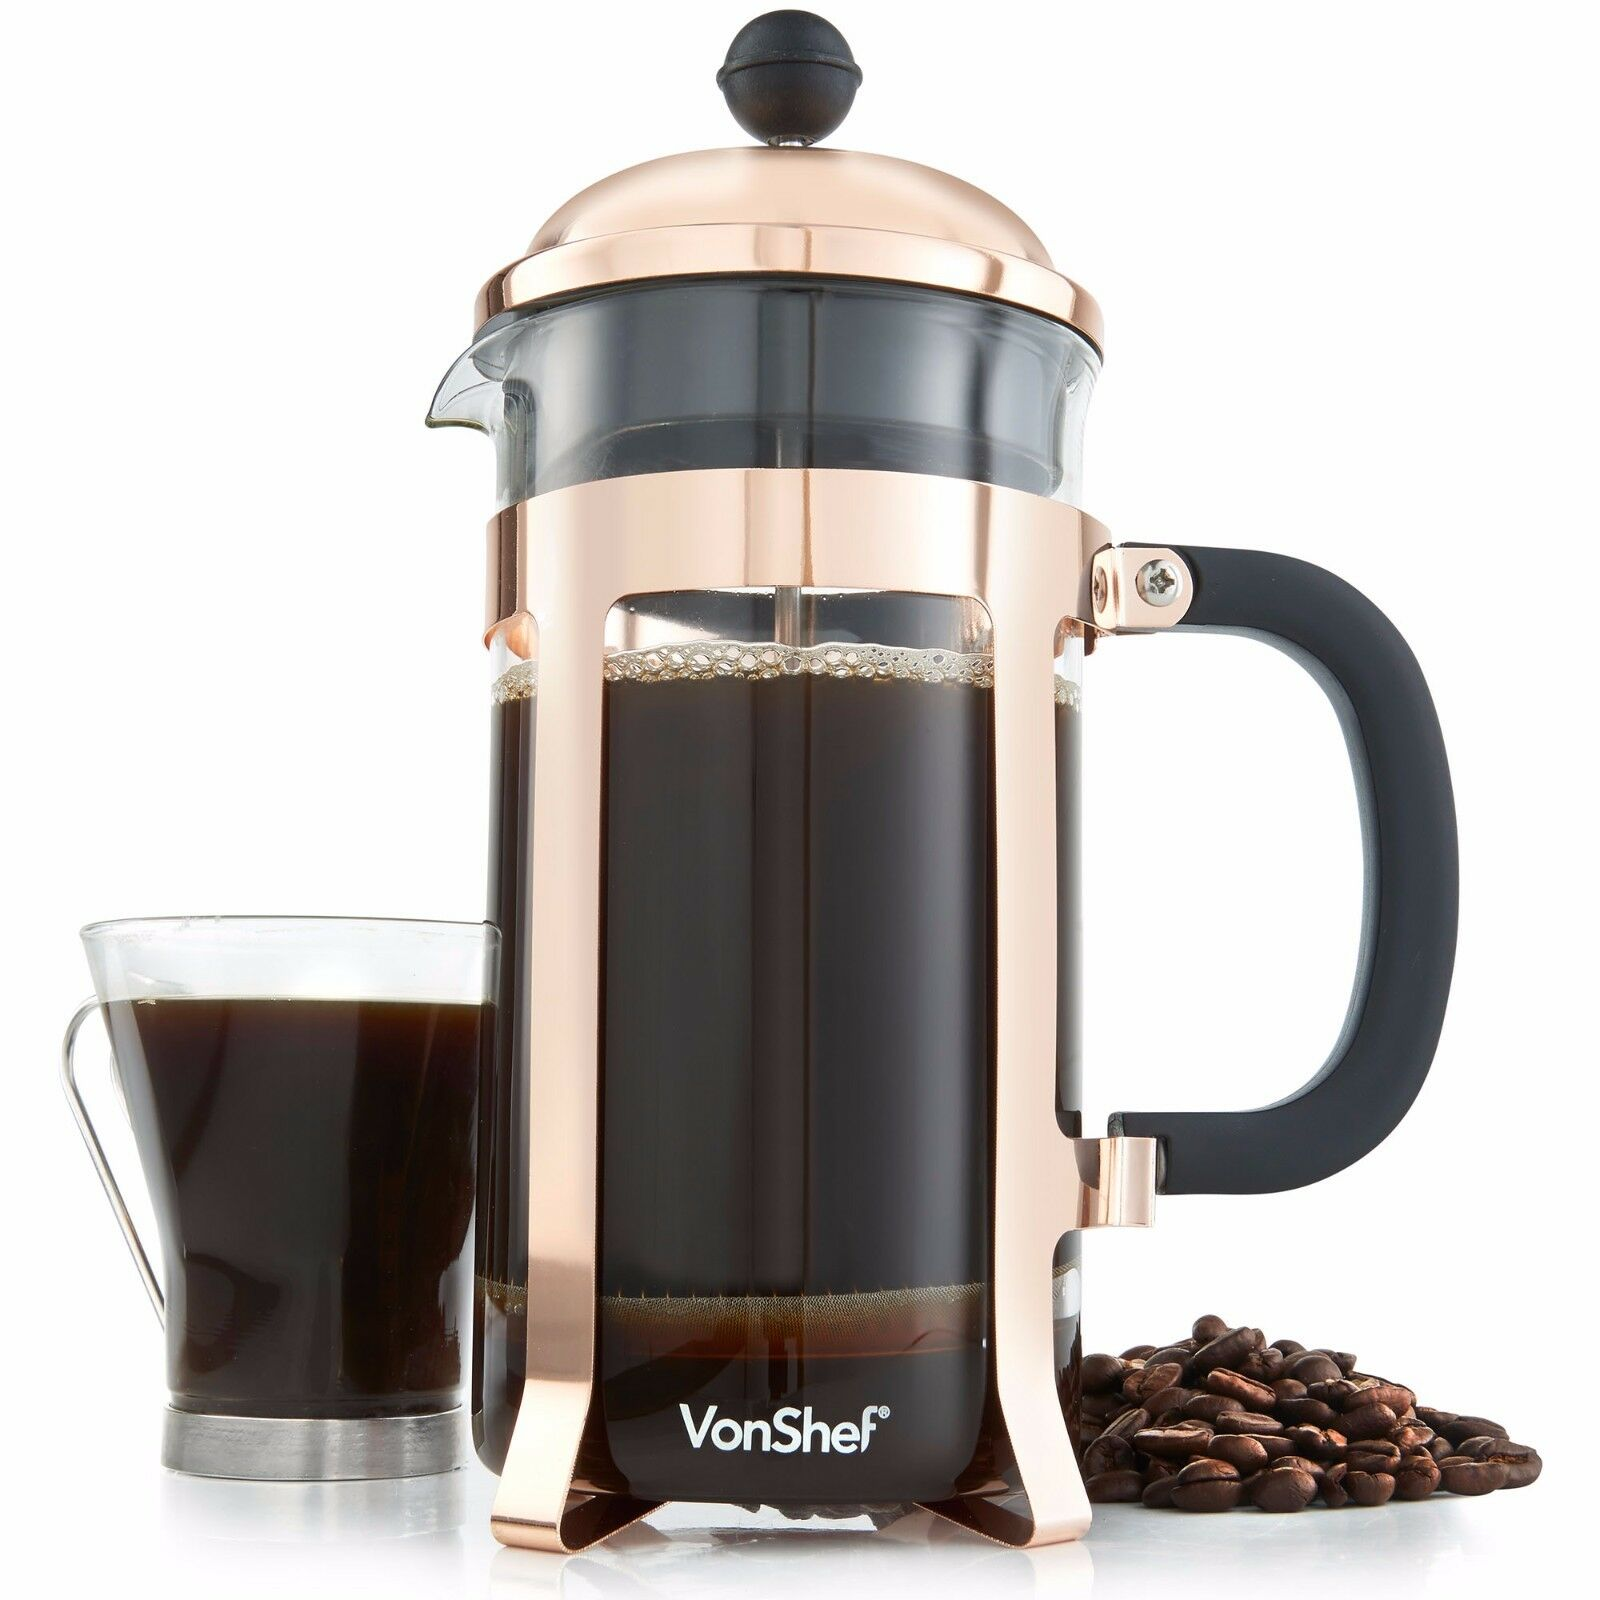 Vonshef Filter Coffee Maker : VonShef 8 Cup/1 Litre Copper Finish French Press Cafetiere Filter Coffee Maker EUR 20,08 ...